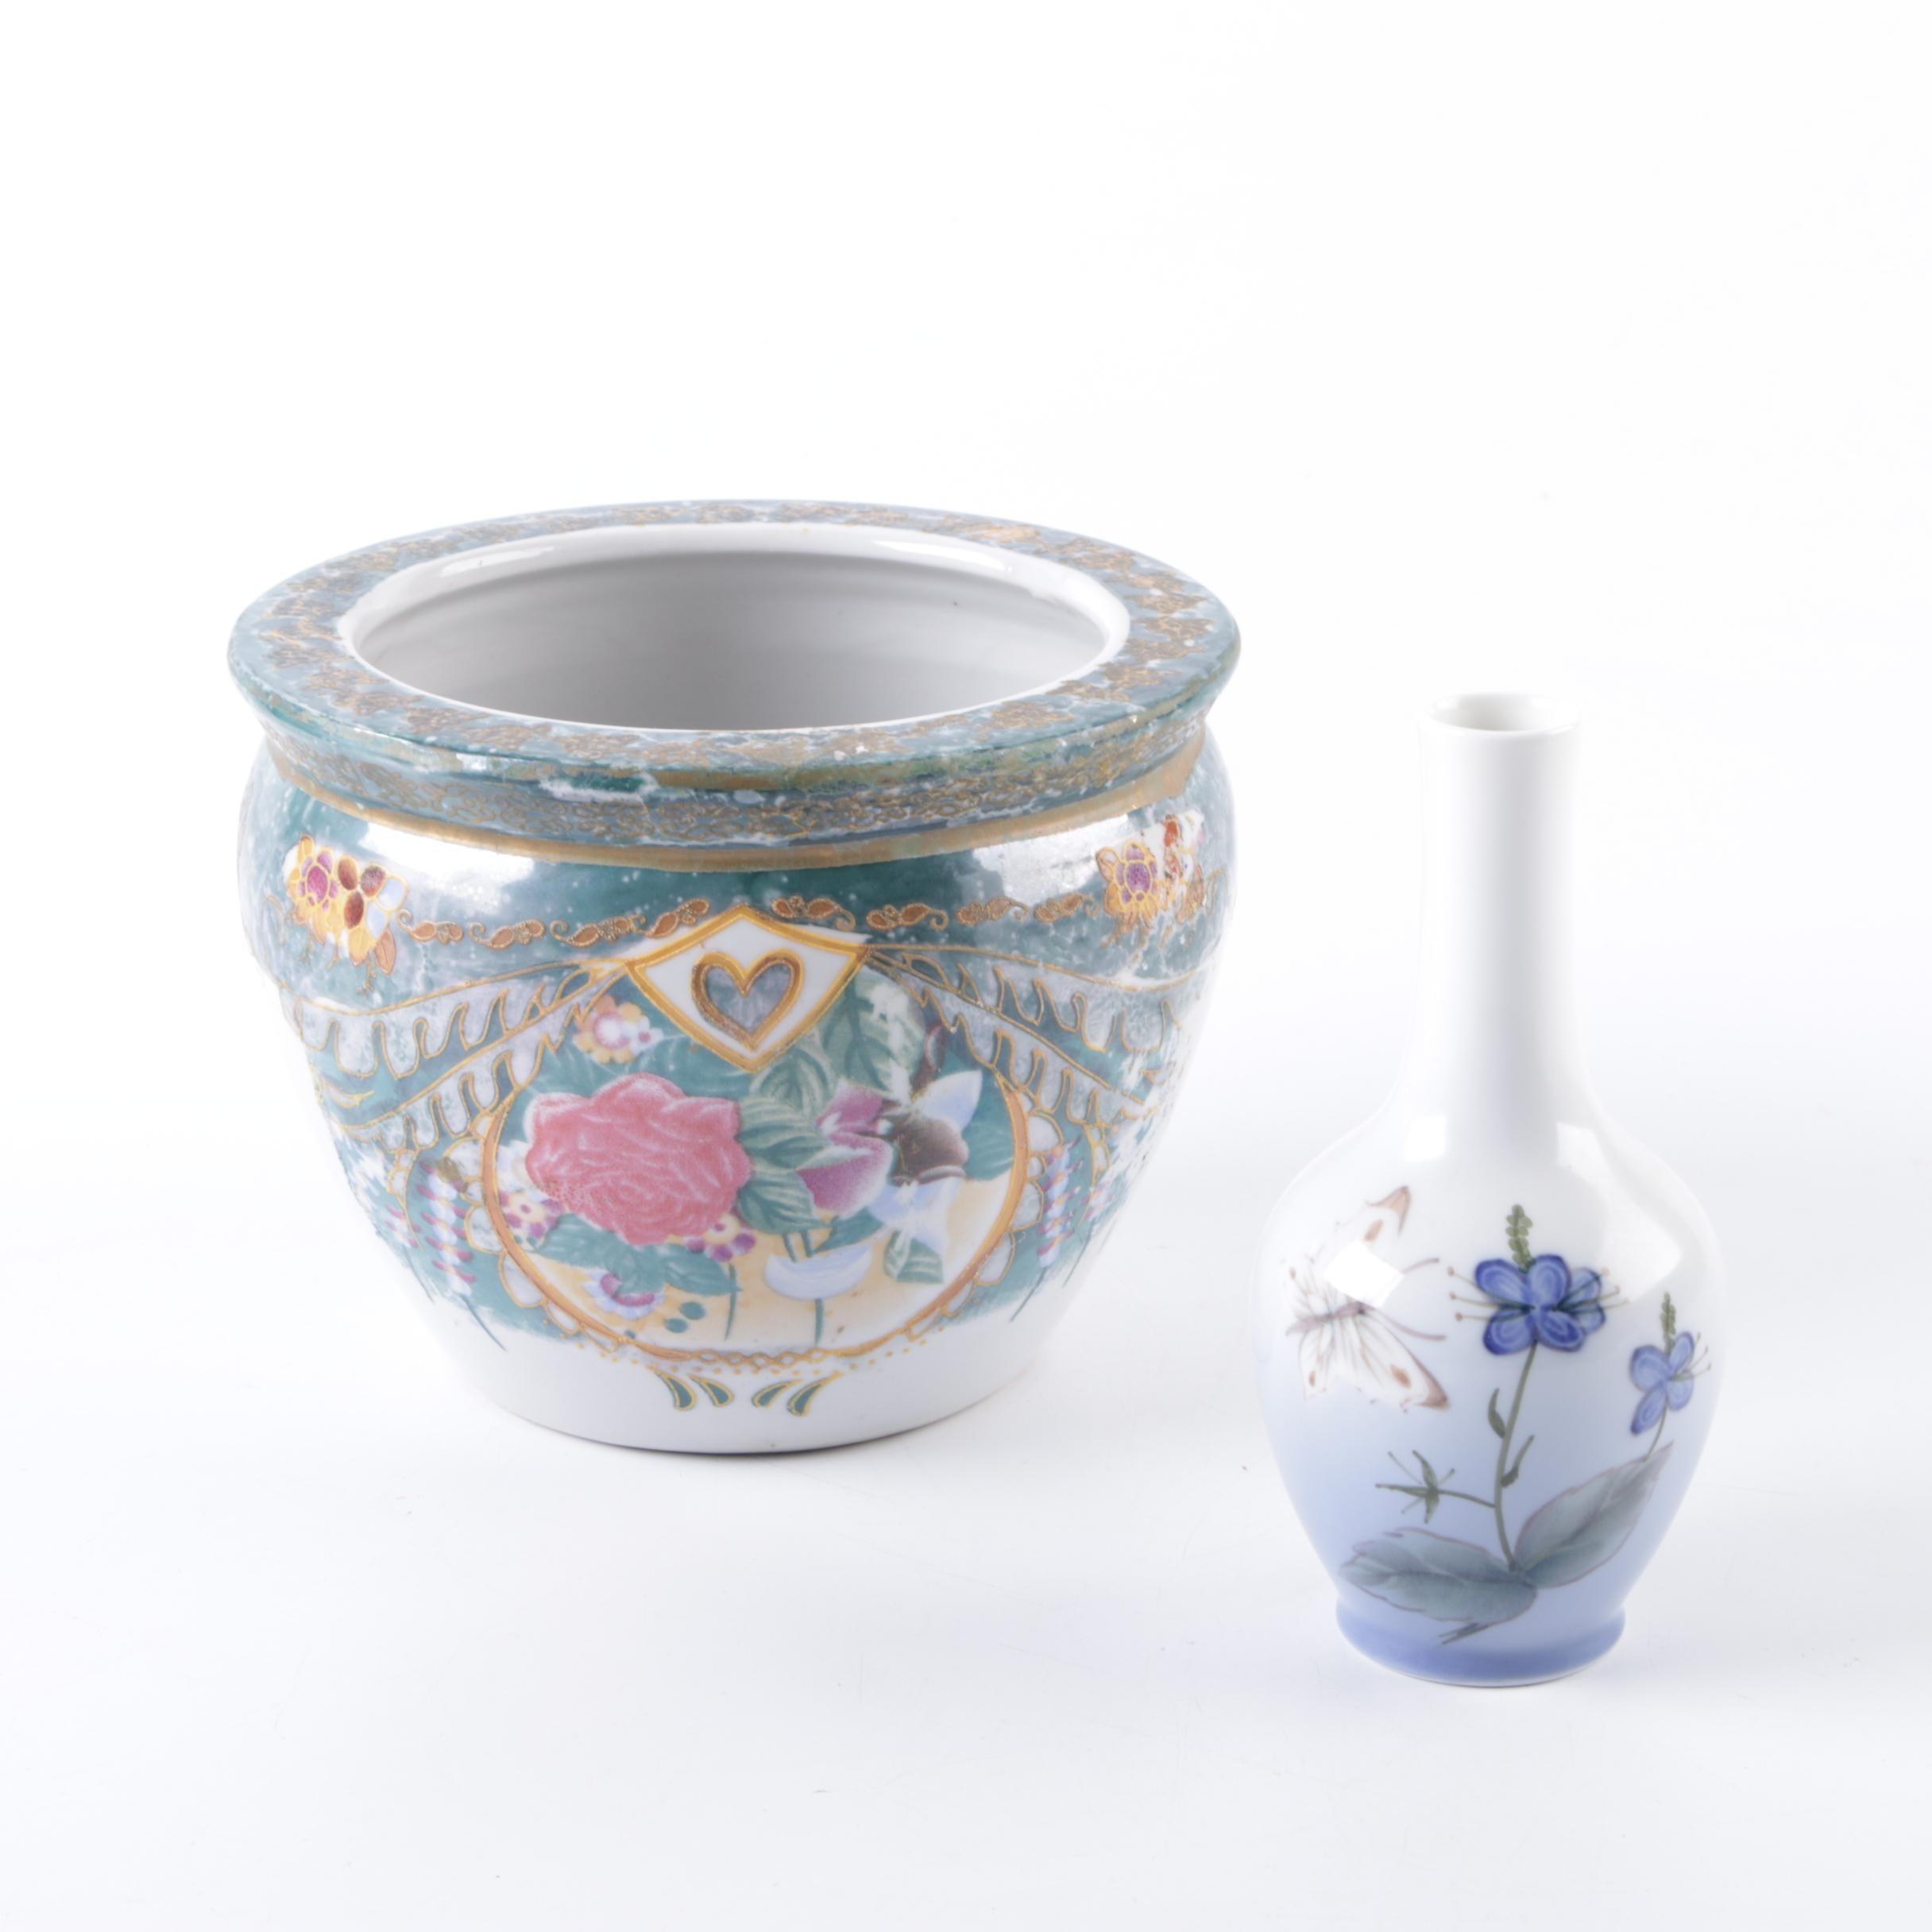 Royal Copenhagen Vase and a Chinese Style Planter